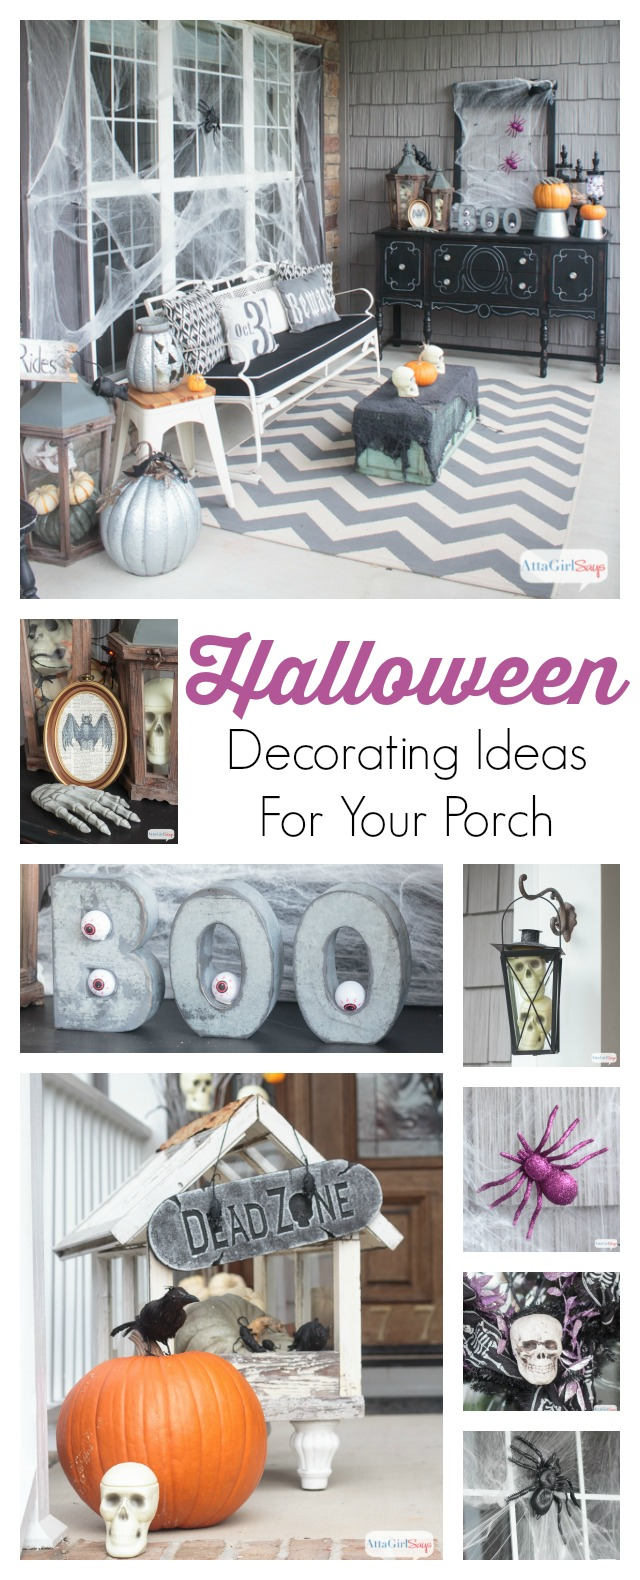 Pinnable Halloween Decorating Ideas For